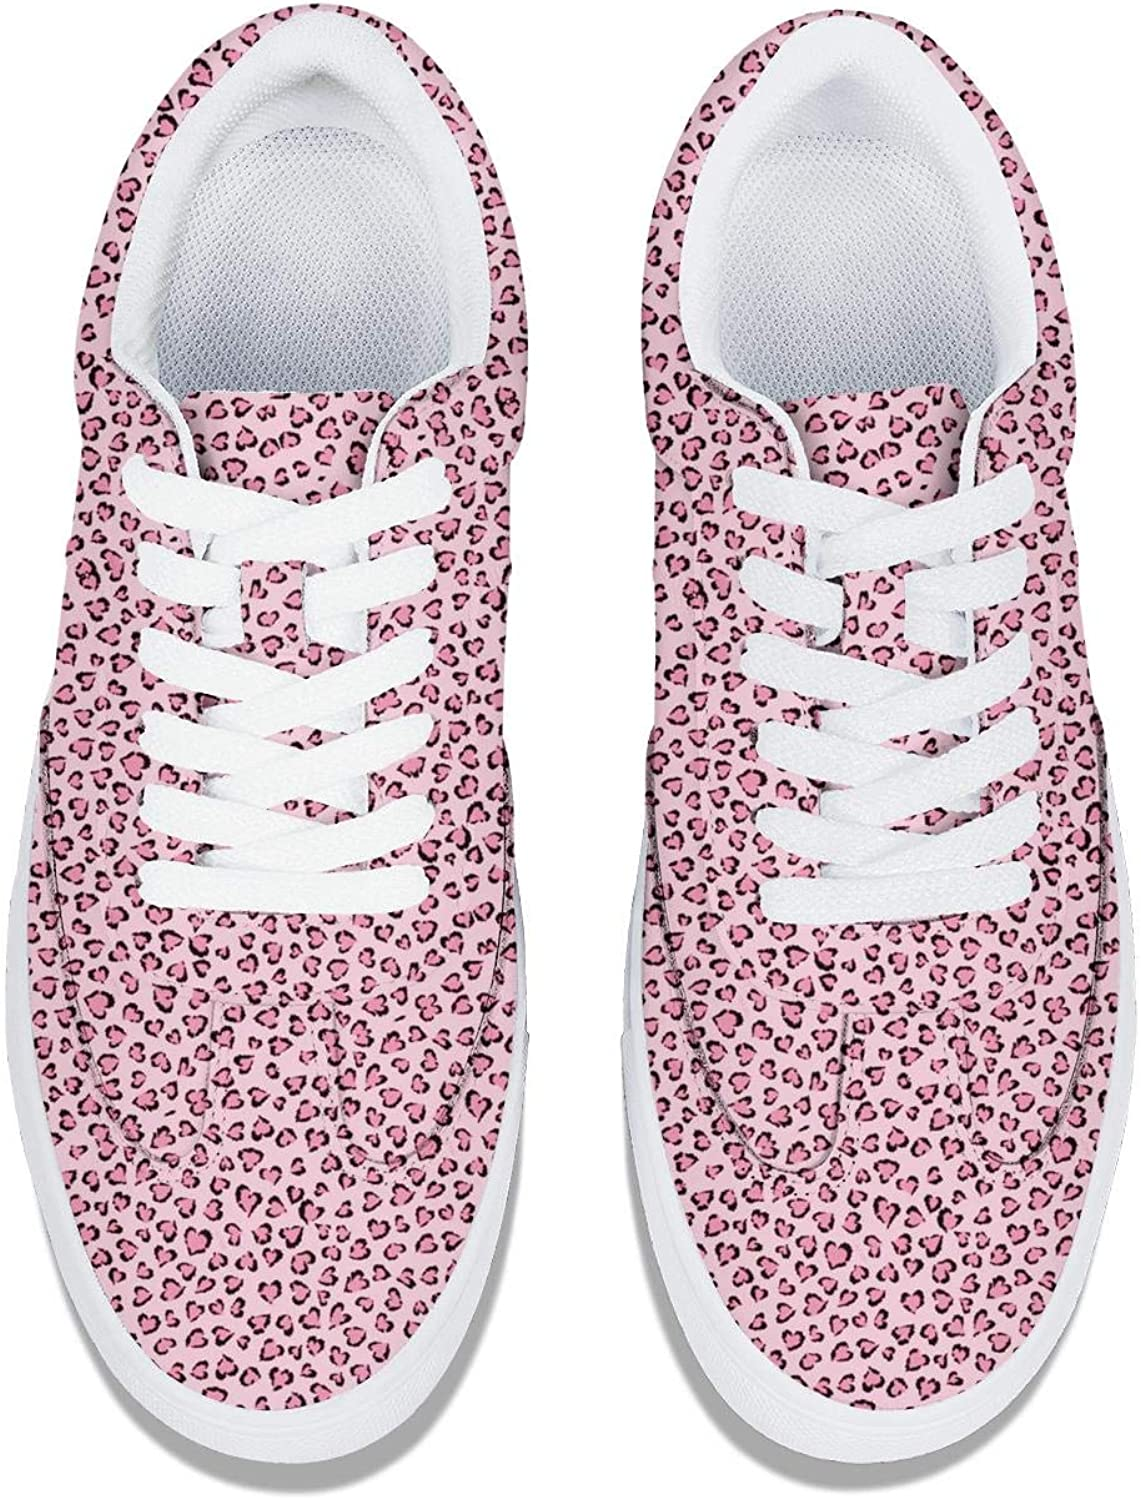 Pink One Love Leopard Cat Images Women Lace-Up Leather Sneaker Fashion Platform Comfortable Tennis Shoes